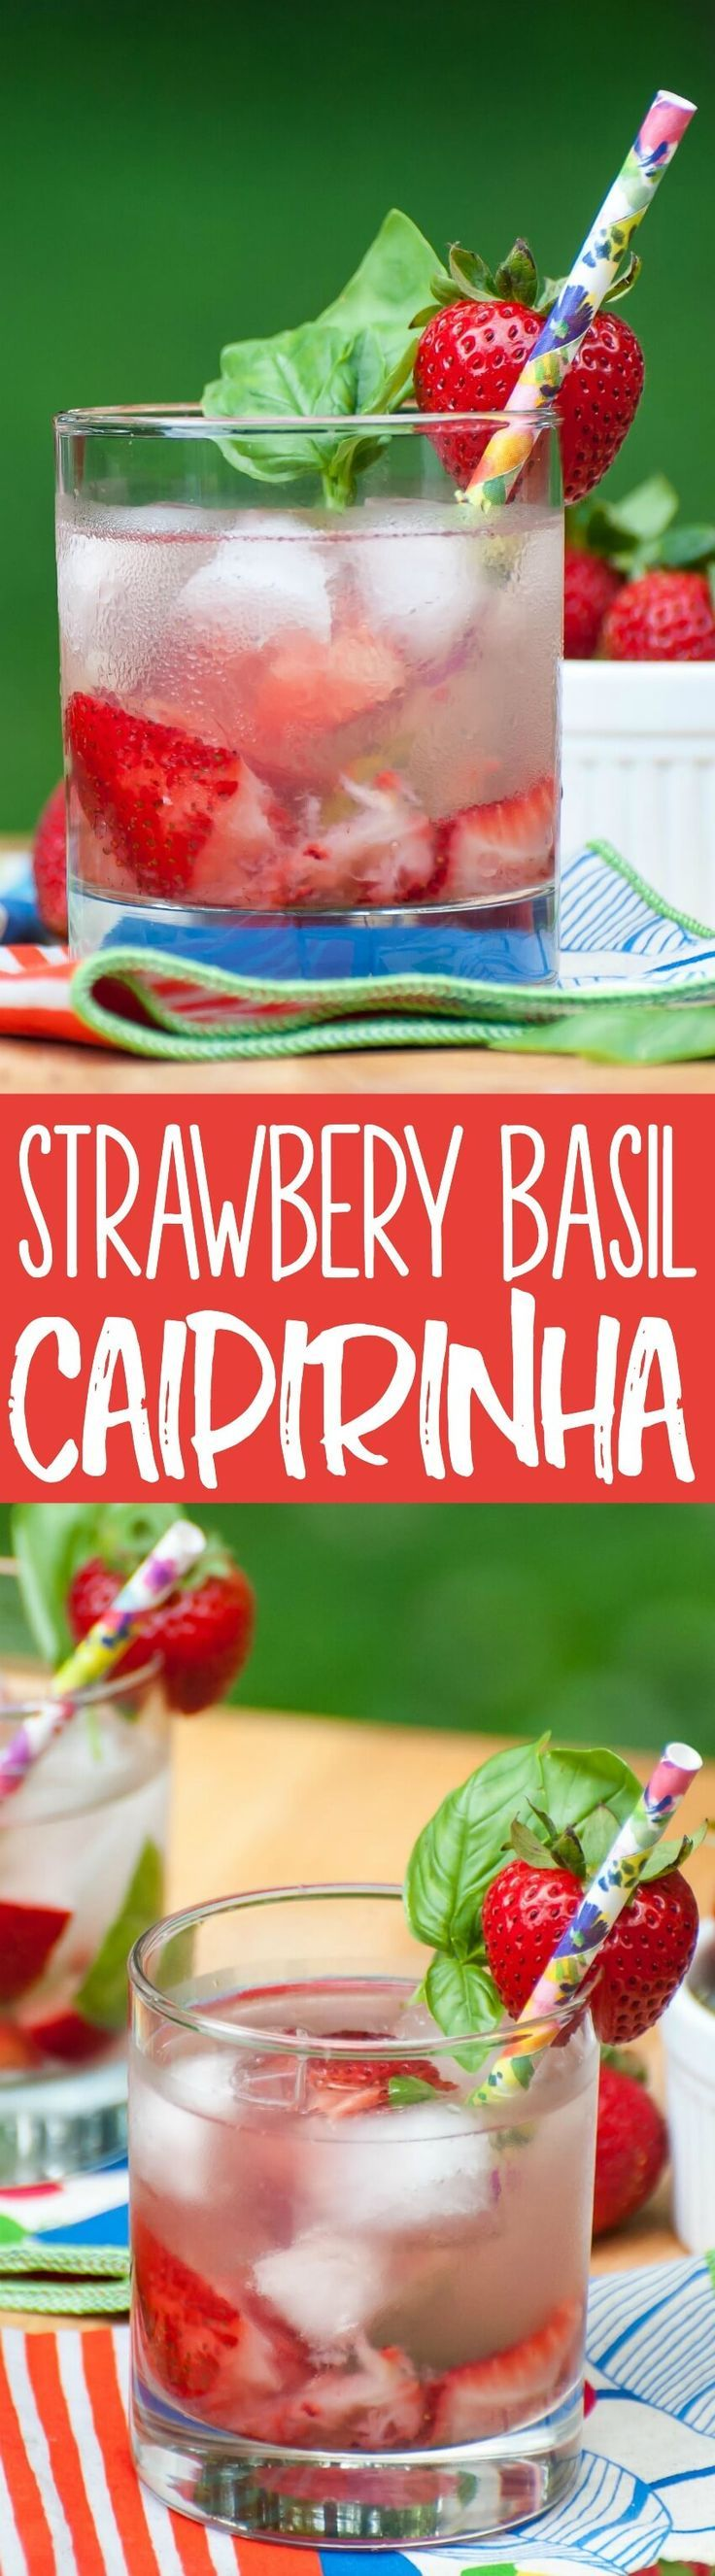 This Brazillian Strawberry Basil Caipirinha cocktail tastes like Summer in a glass!